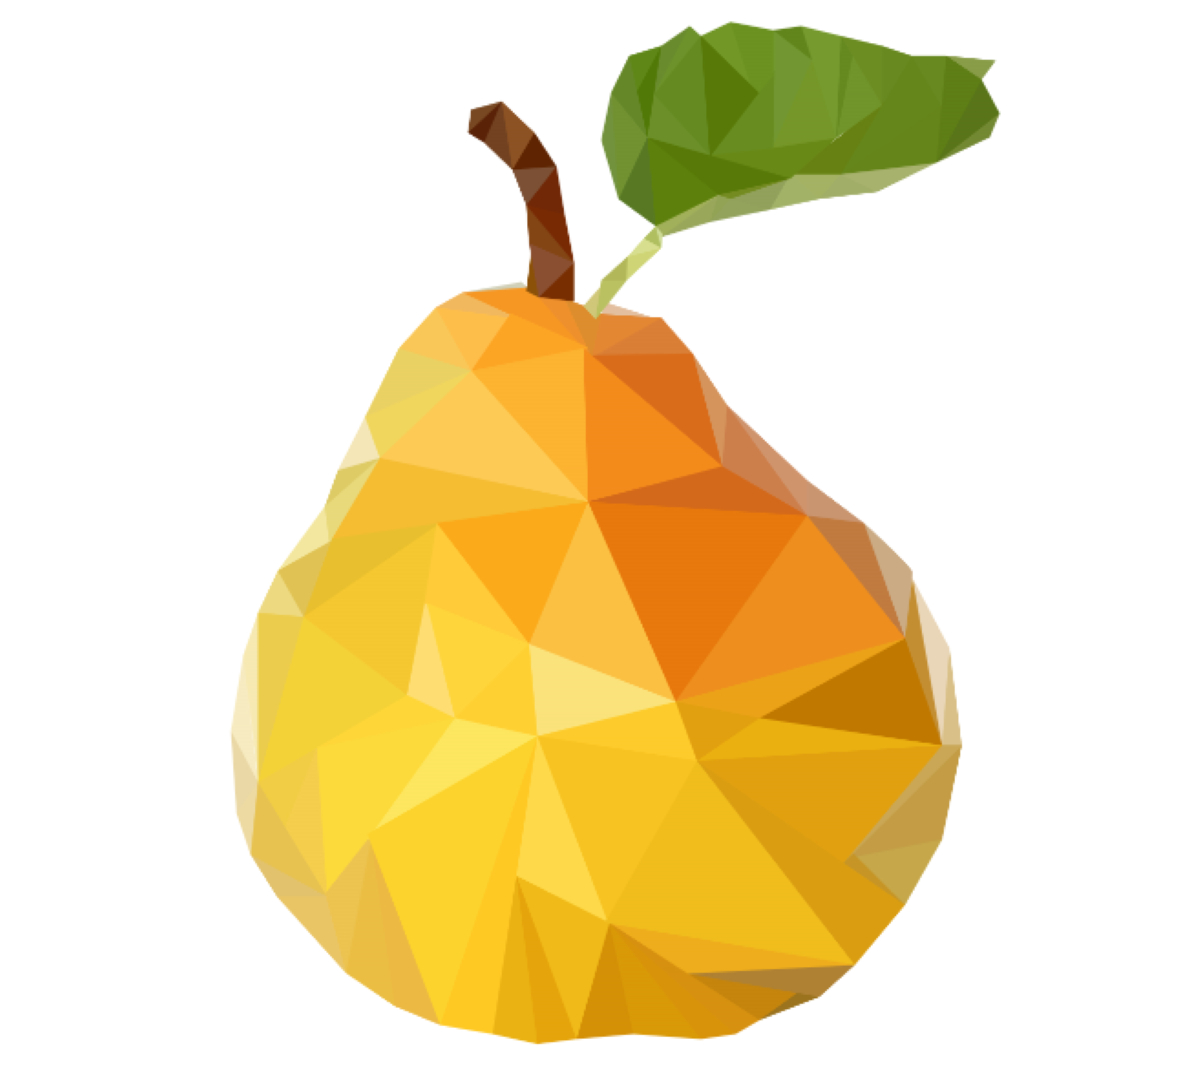 Pear Low Poly